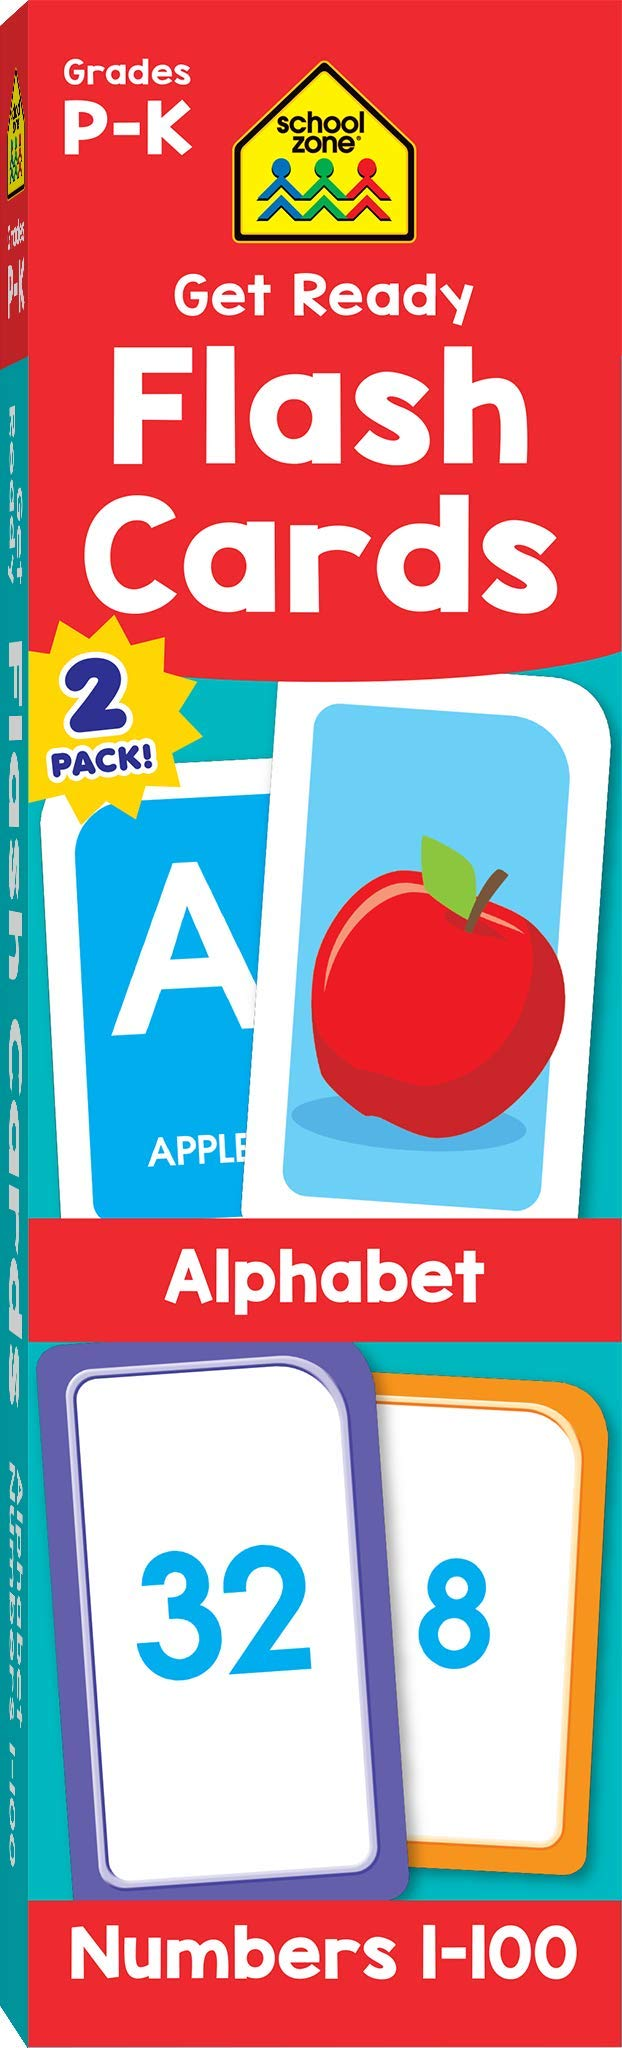 School Zone - Get Ready Flash Cards Alphabet & Numbers 2 Pack - Ages 4 to six, Preschool to Kindergarten, ABCs, Uppercase and Lowercase Letters, Numbers 1-100, Counting, and More